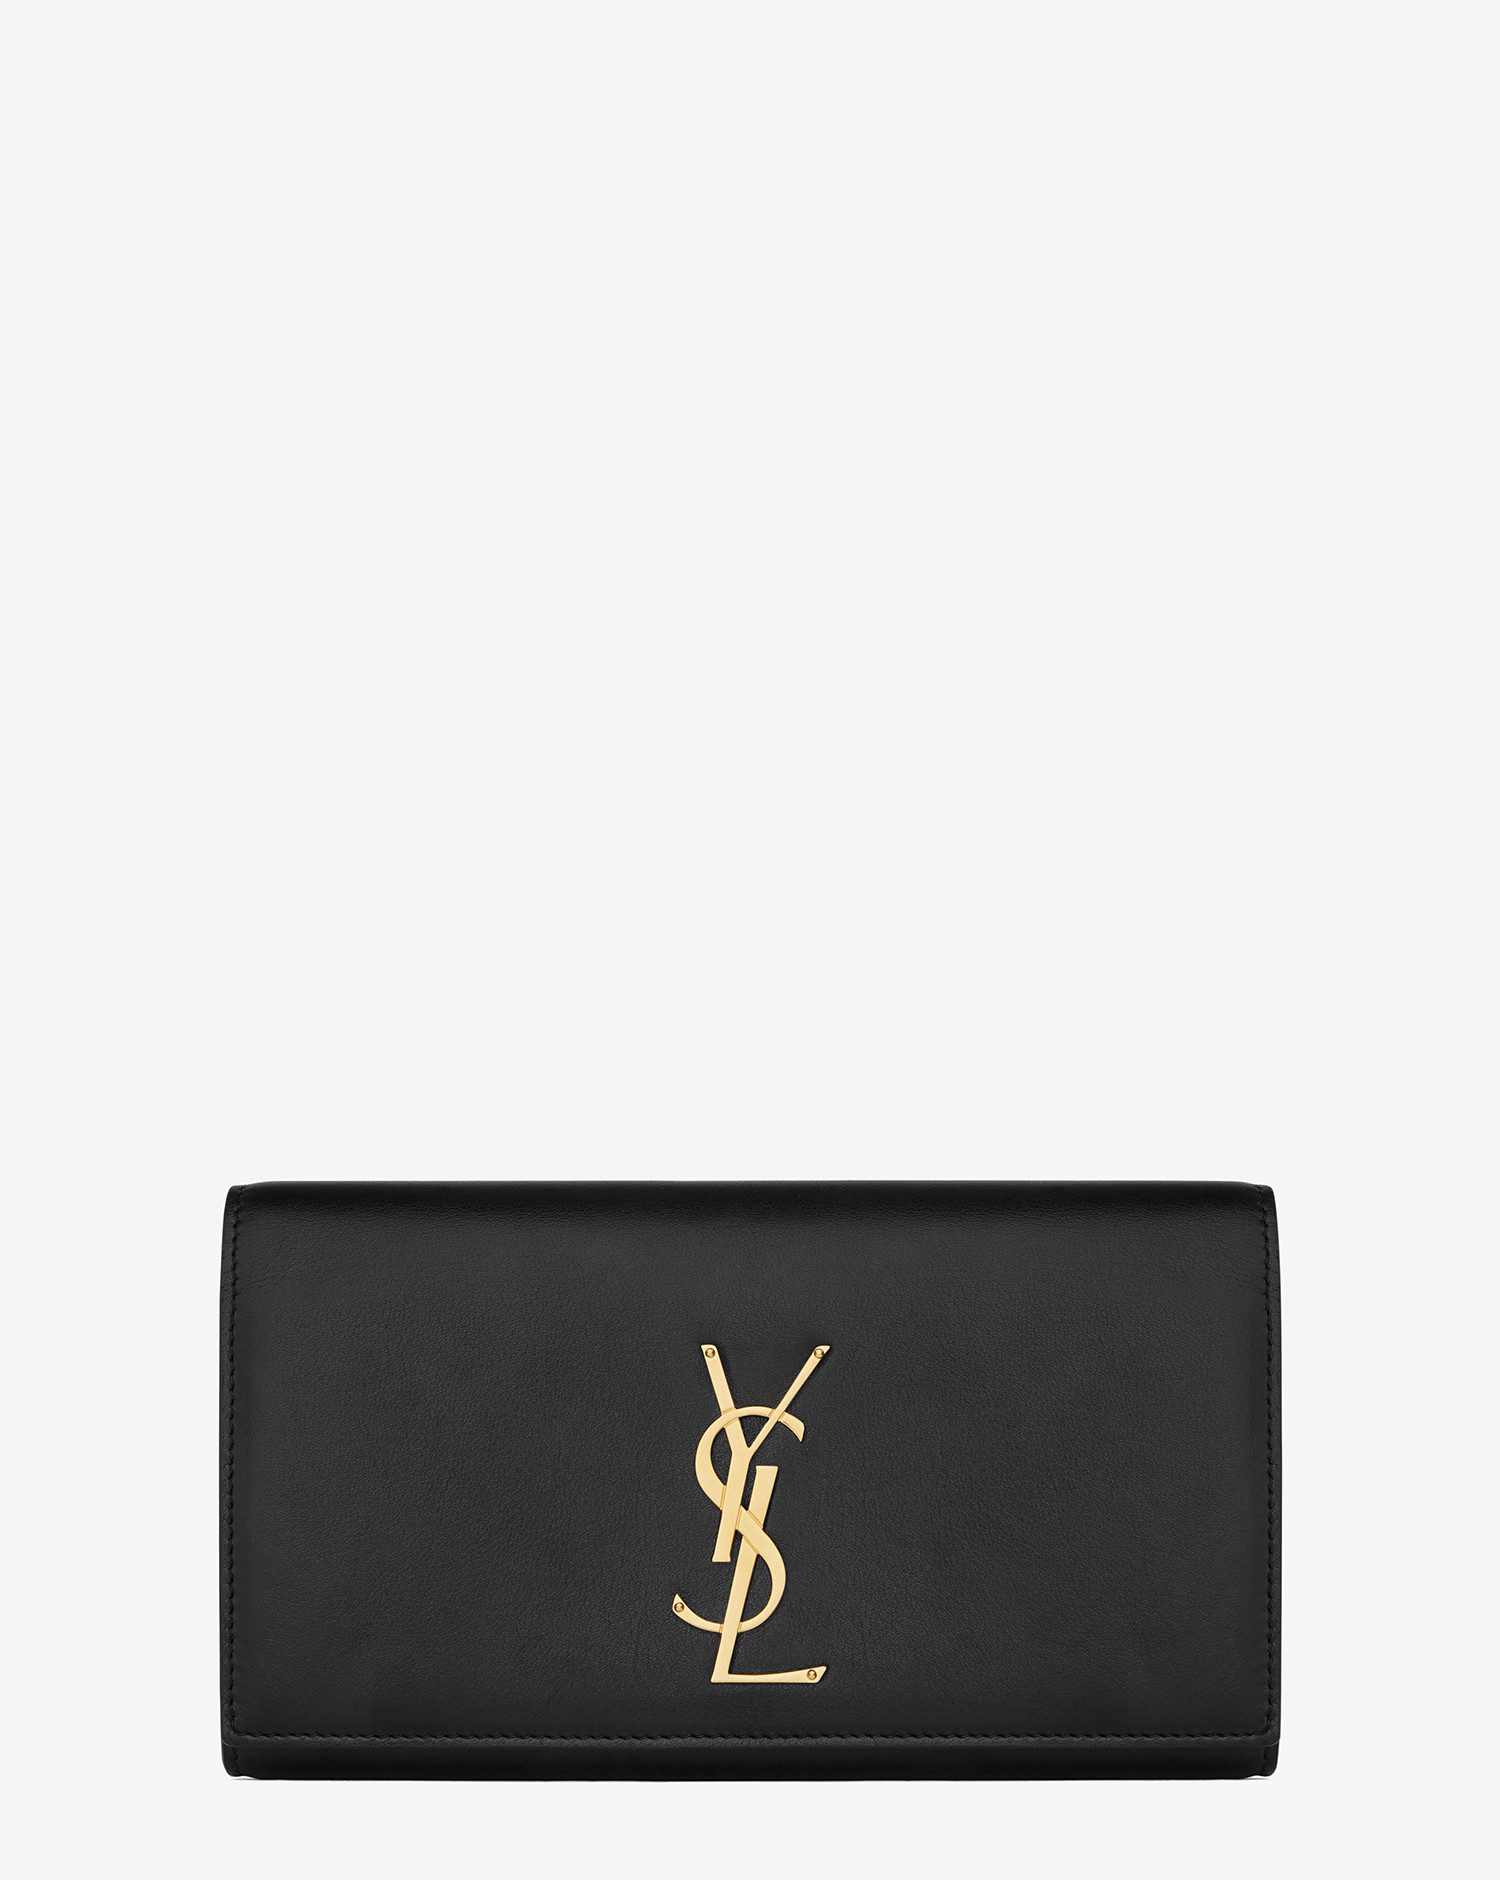 бумажник Yves Saint Laurent 45249613 YSL/45249613kb бумажник yves saint laurent 314995 bj50j ysl saint laurent 314995bj50j